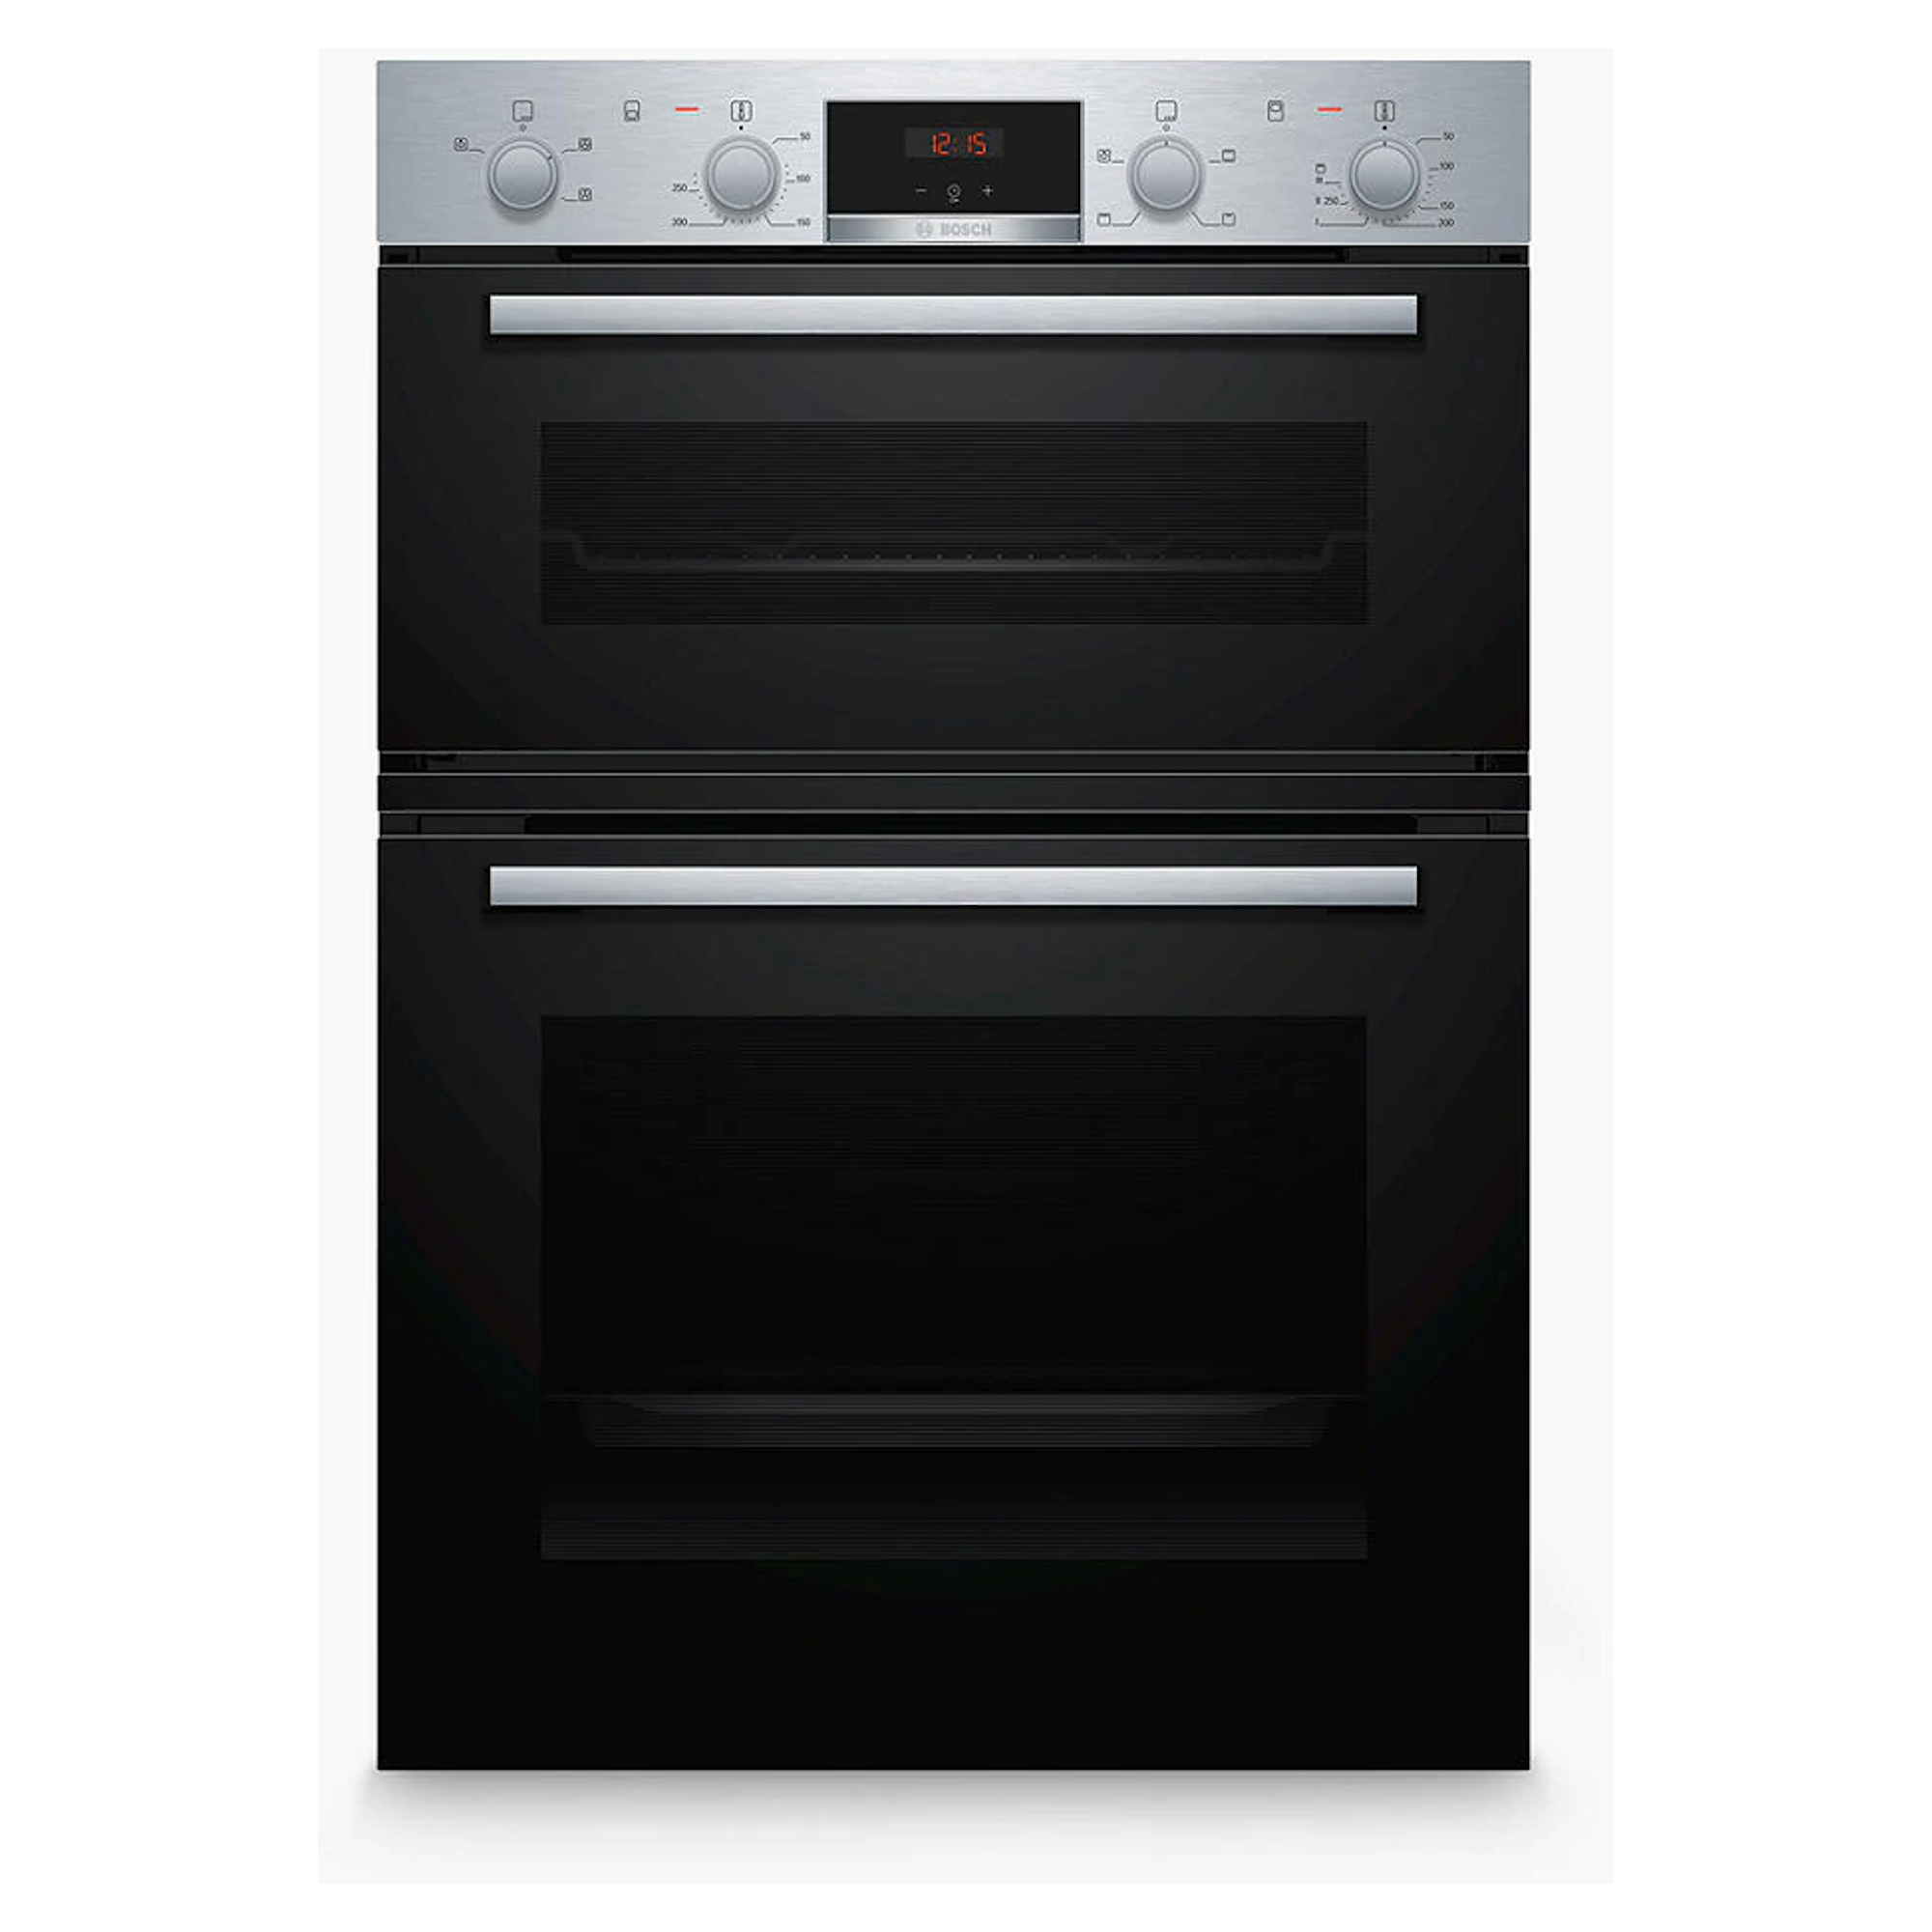 Bosch Mha133br0b Built In Double Electric Oven Hughes